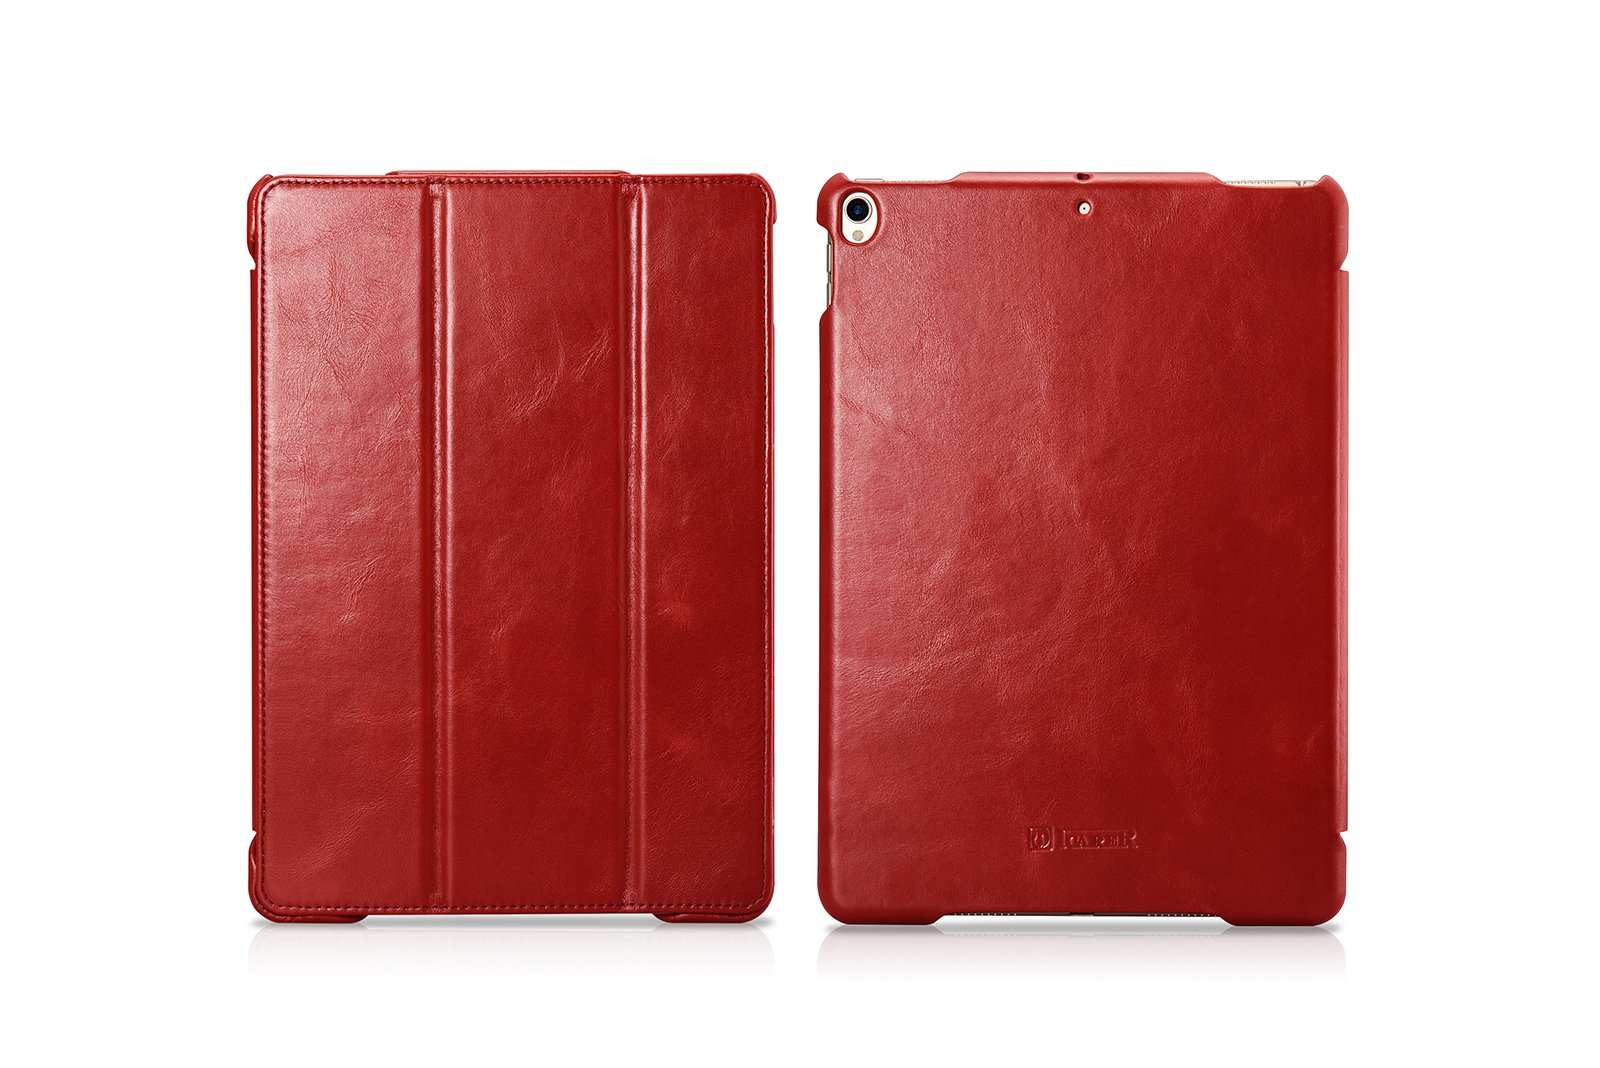 Pad Pro Leather Case, Icarercase Vintage Genuine Leather Side Open Flip Folio Style Smart Cover in Ultra Slim Design with Stand & Auto Wake/Sleep Functions for 10.5-inch iPad Pro 2017 (Red)